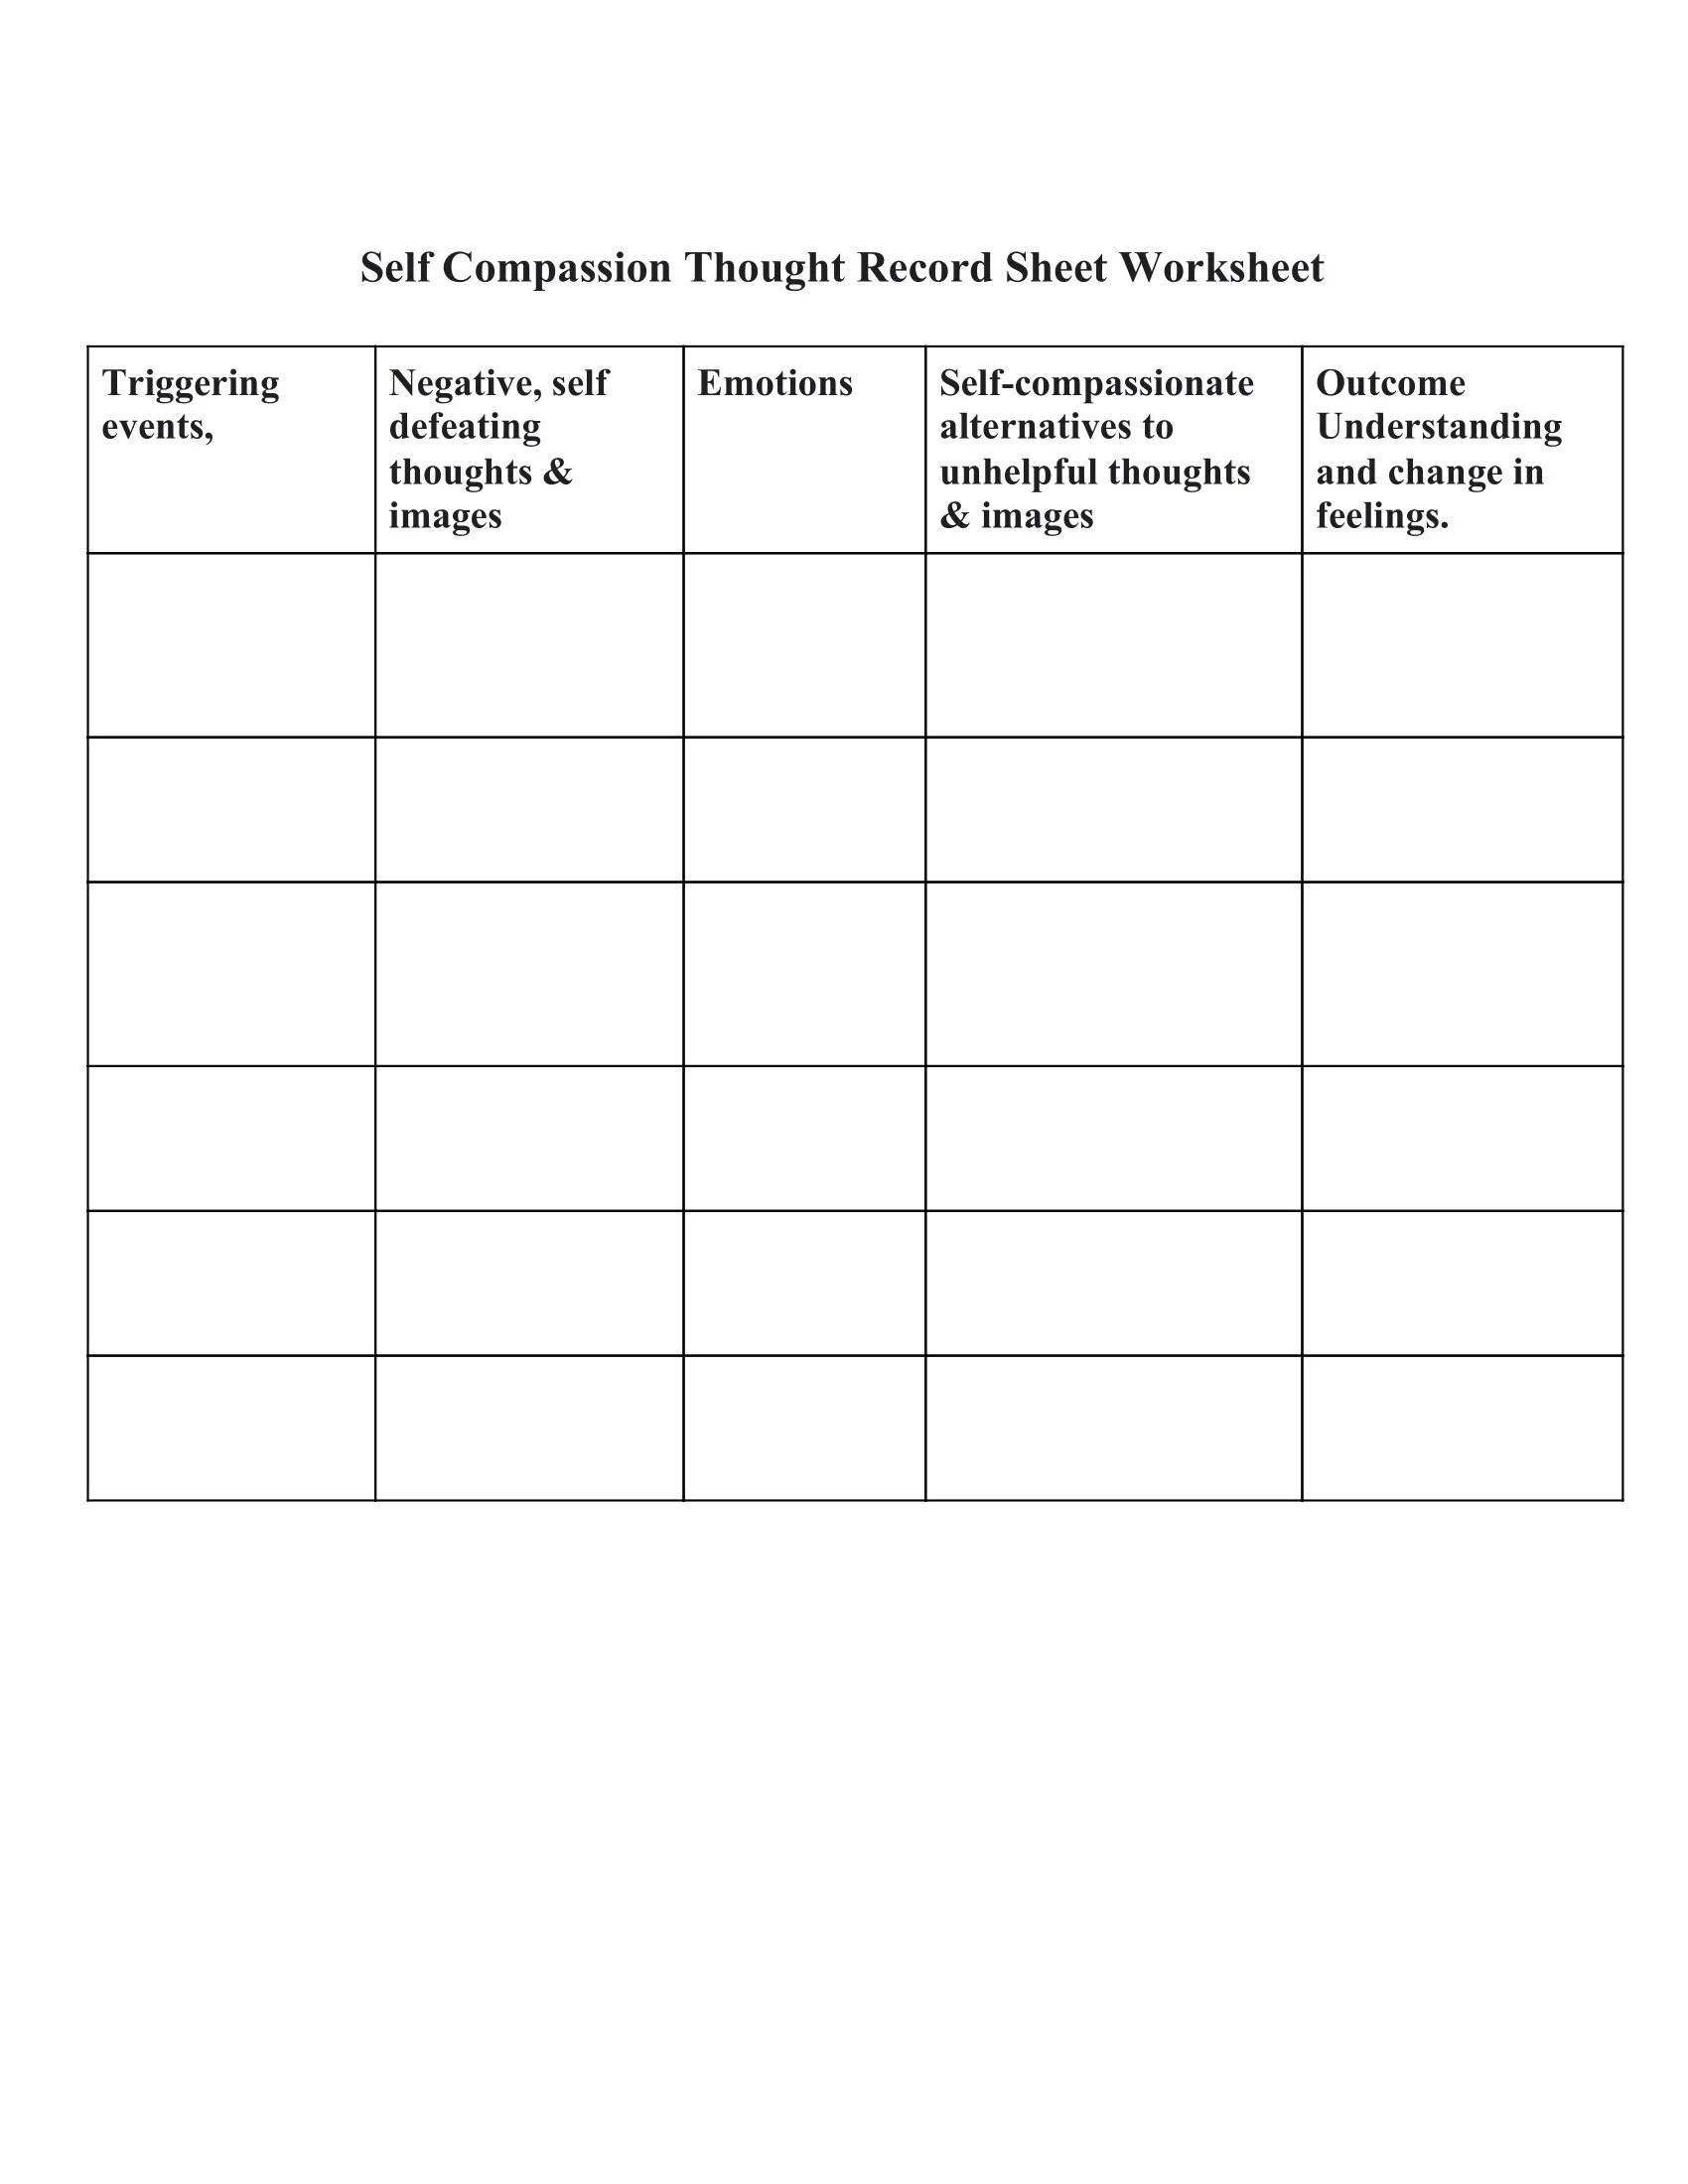 Self Compassion Thought Record Sheet Worksheet